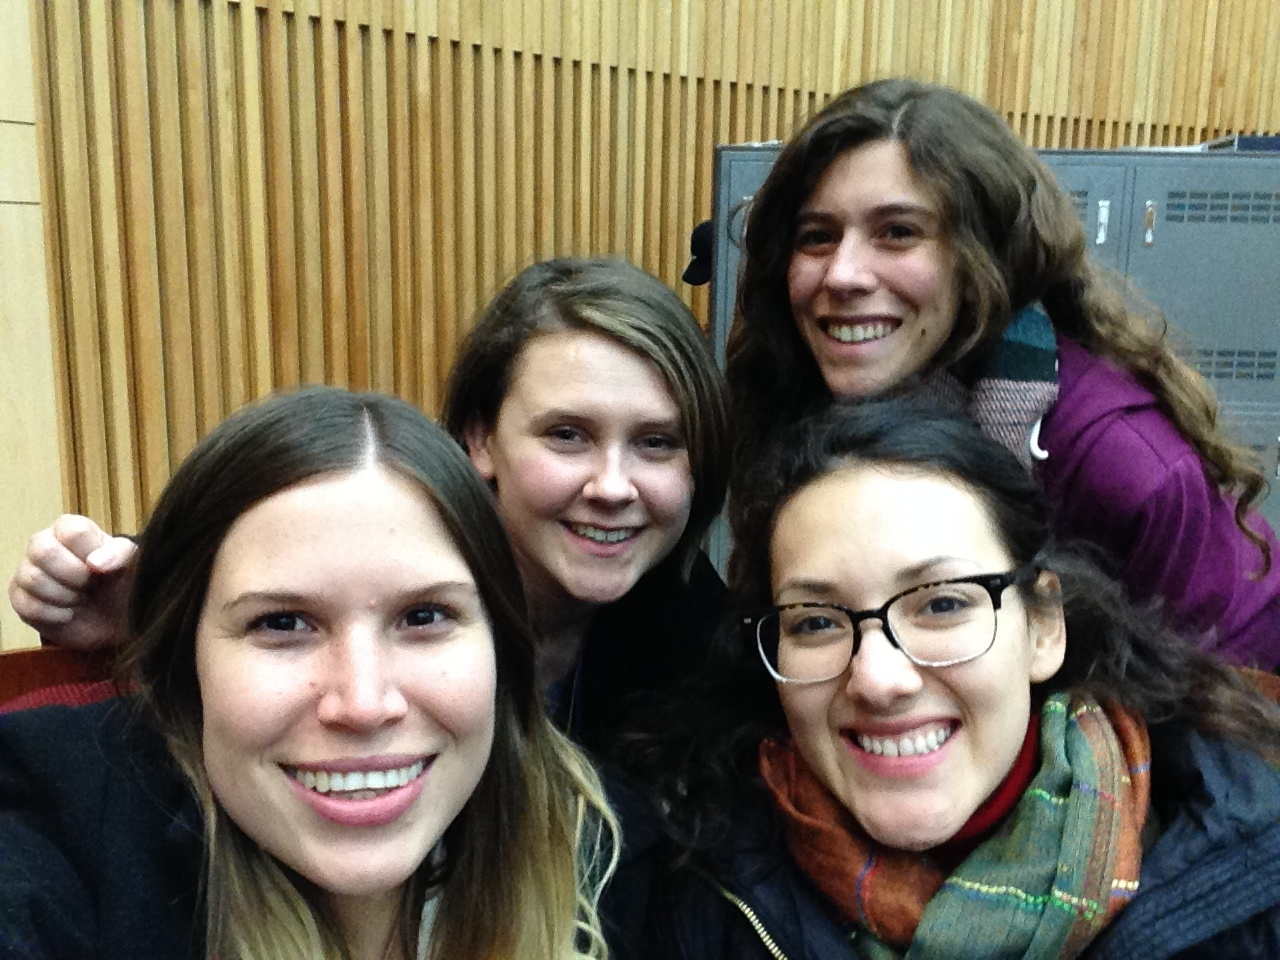 Some of the lovely people I met during orientation - Bianca, Ruth and Nastasia.